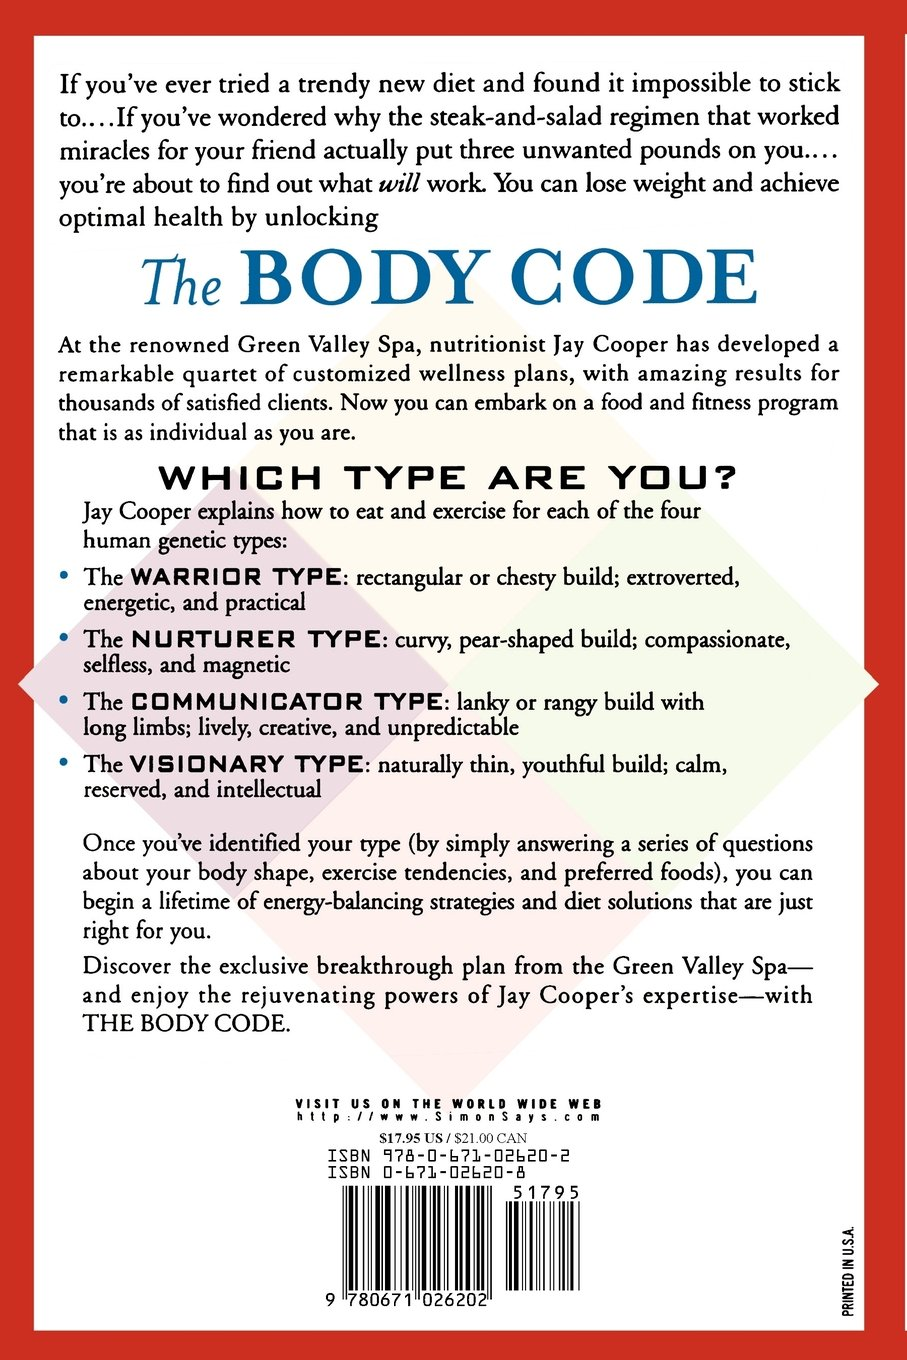 The Body Code A Personal Wellness And Weight Loss Plan At World Famous Green Valley Spa New York Kathryn Lance Jay Cooper 9780671026202